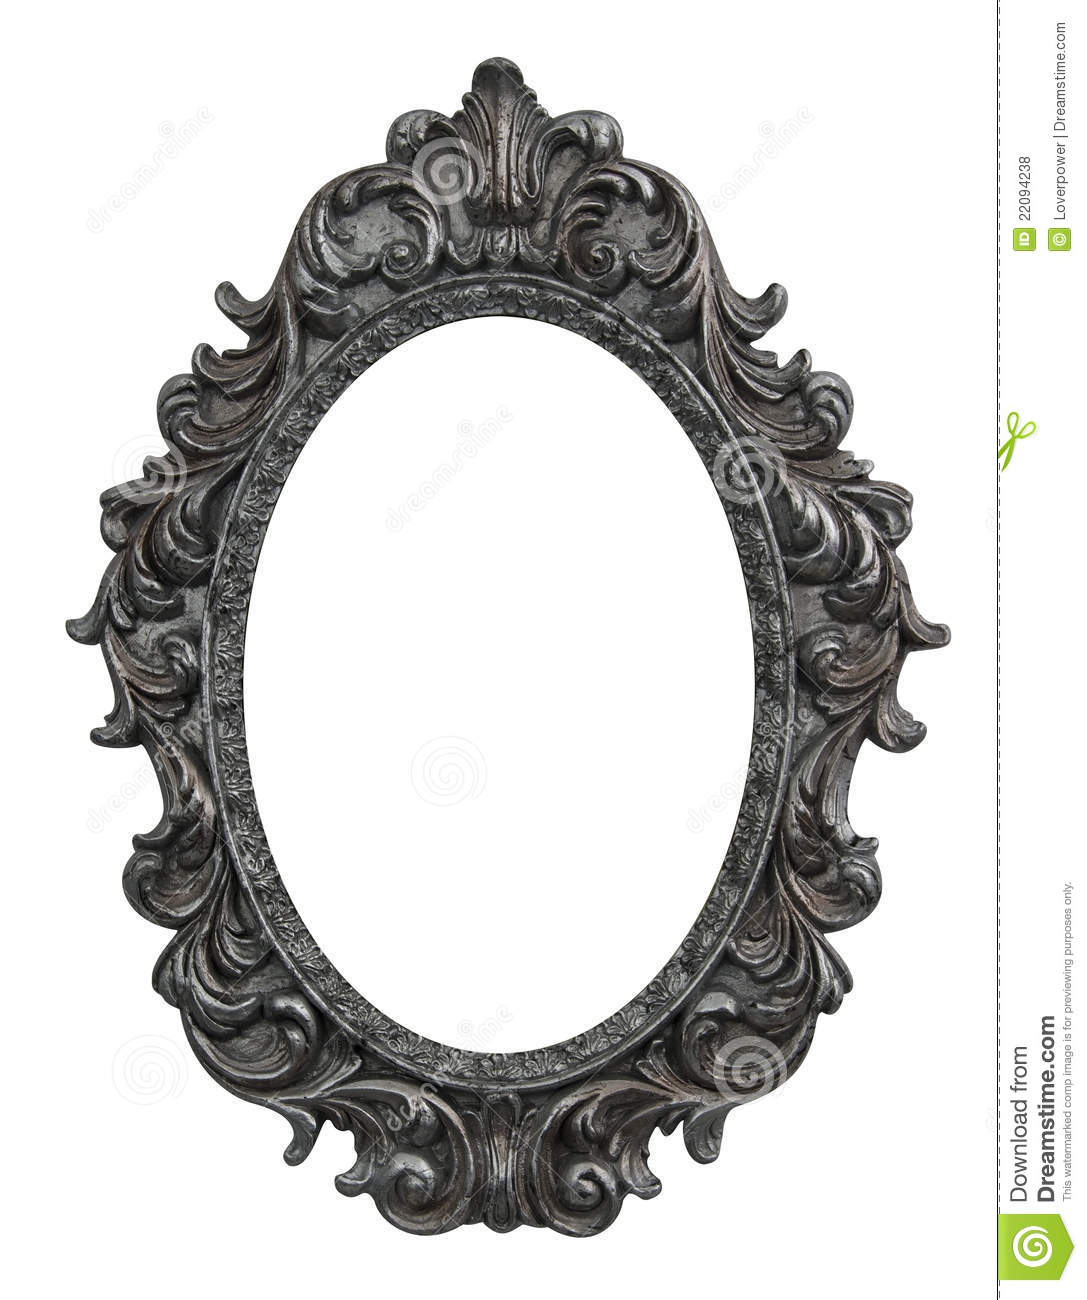 baroque oval frame stock photo image of grunge photo 22094238. Black Bedroom Furniture Sets. Home Design Ideas